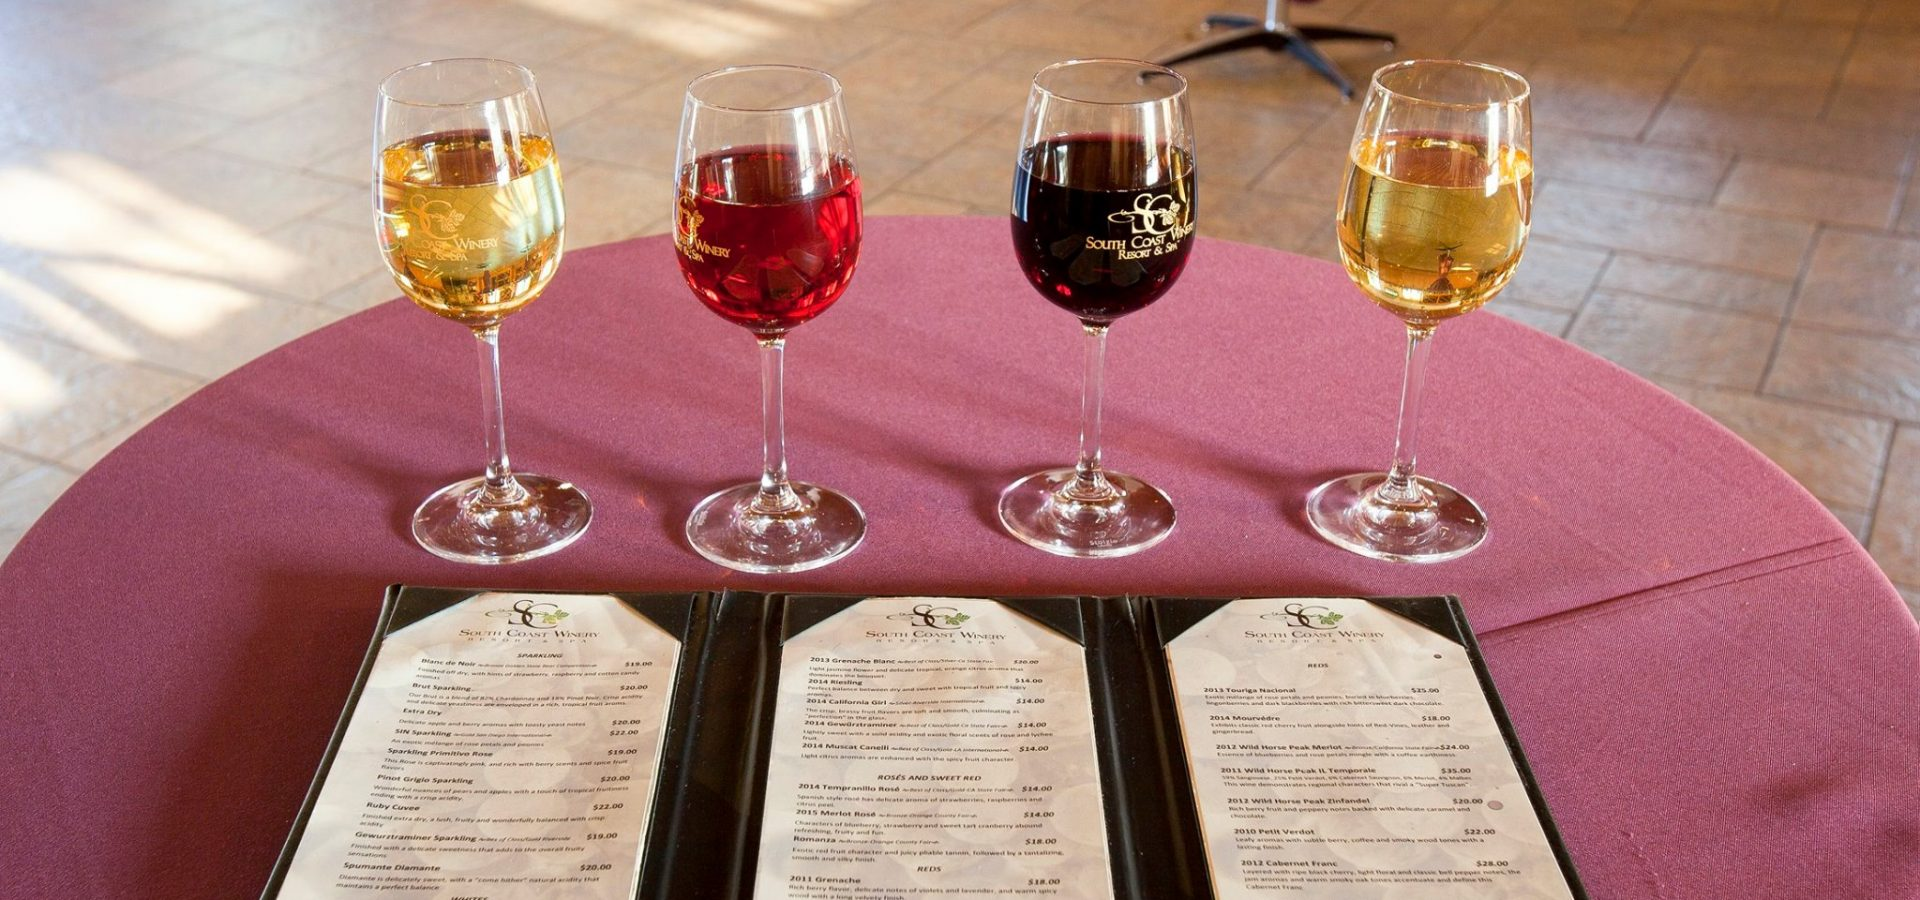 wine tasting menus at winery in Temecula california